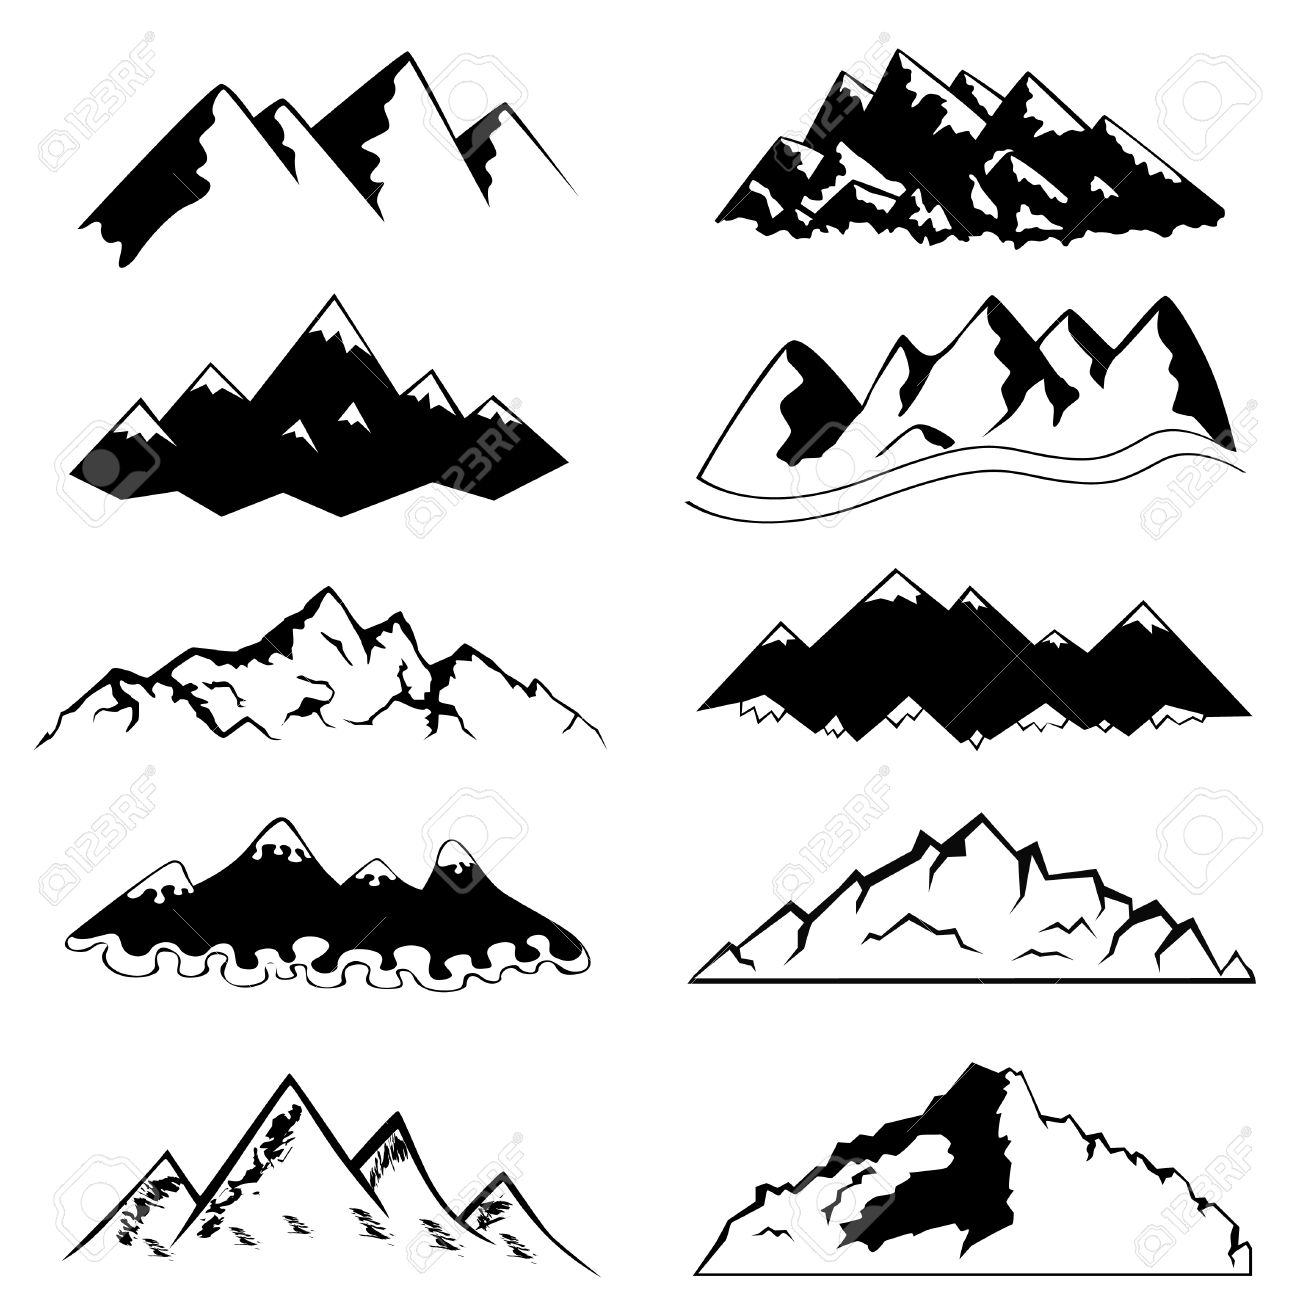 Set Of Mountain Royalty Free Cliparts, Vectors, And Stock.